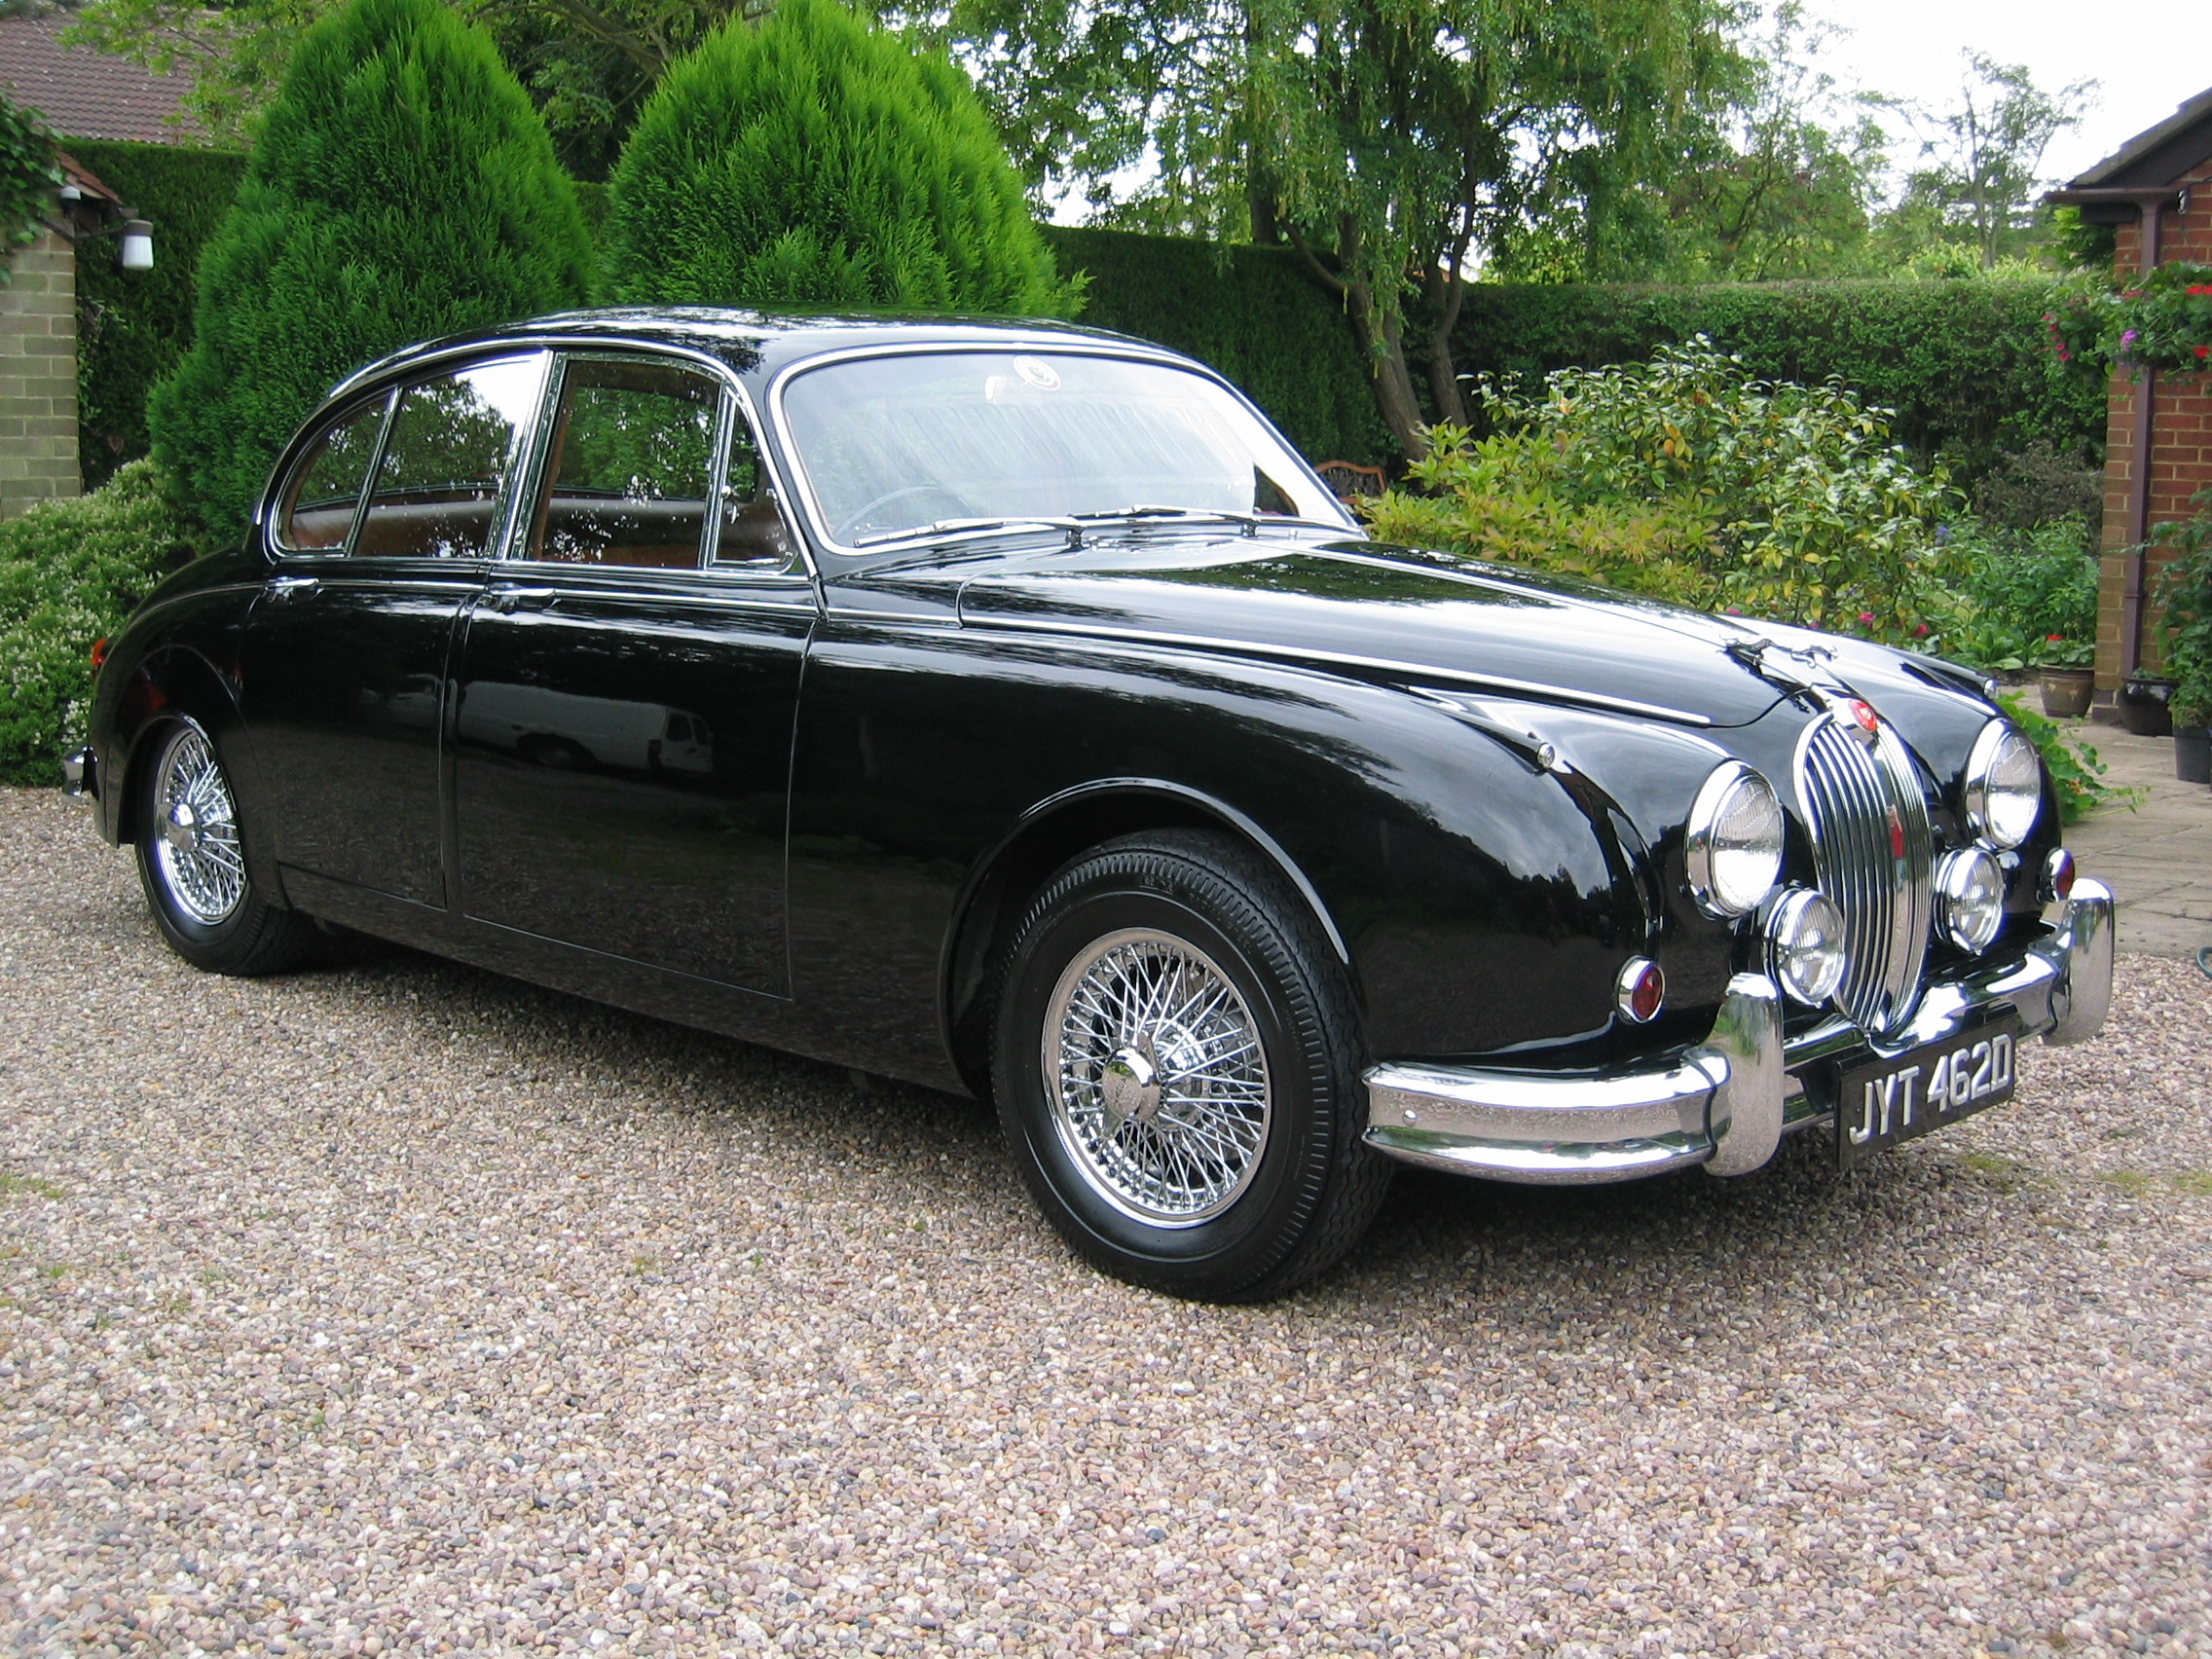 This Jaguar Model The MK2 Can Wallpaper For Free